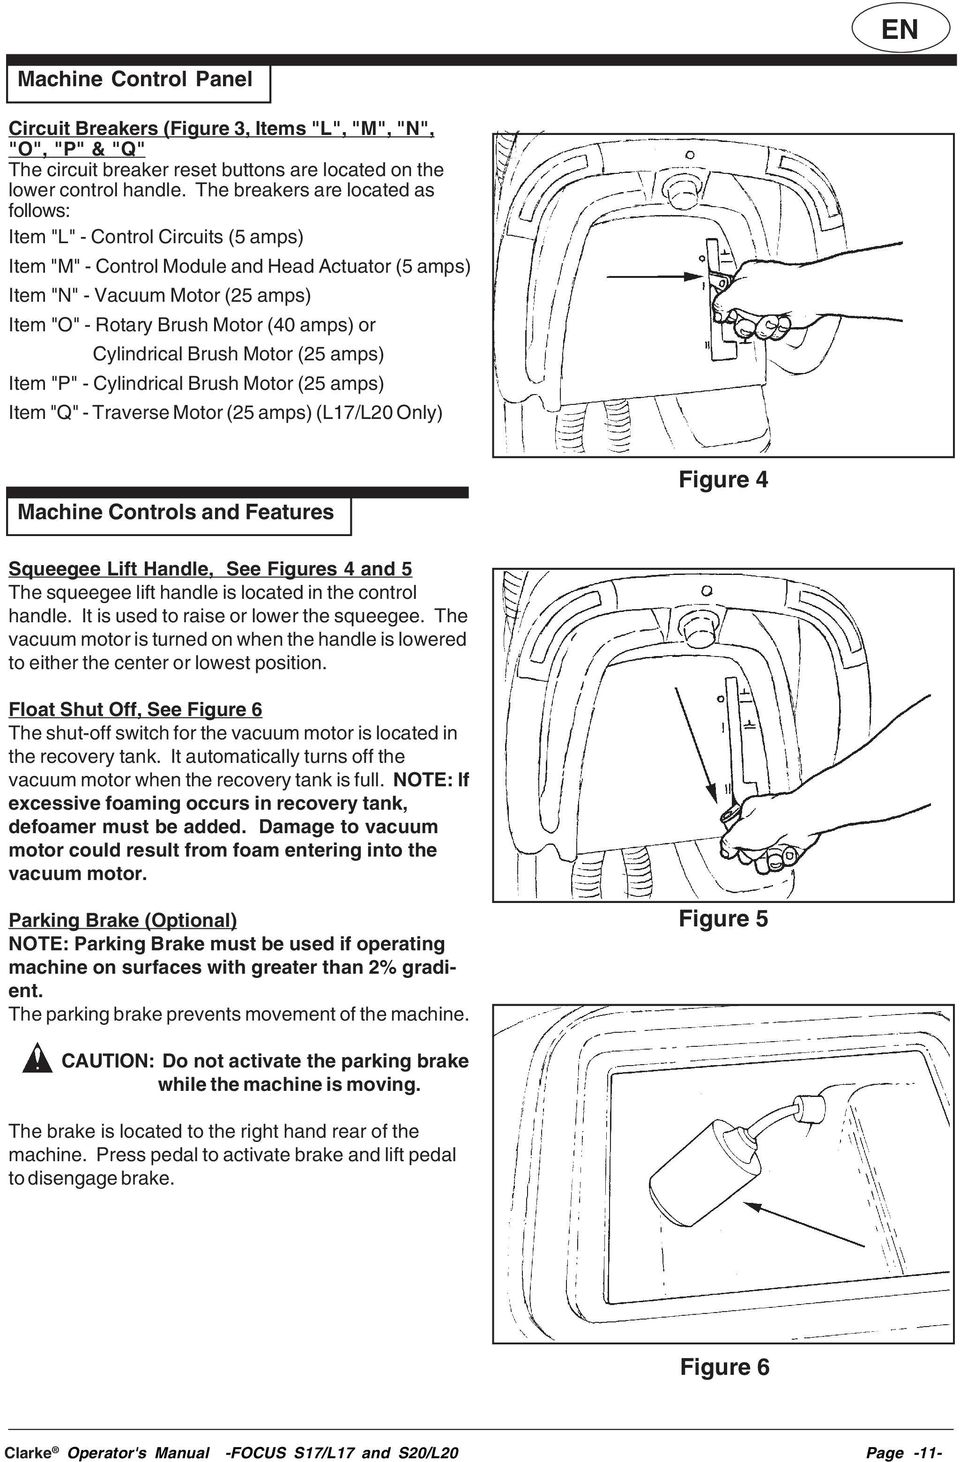 "amps) or Cylindrical Brush Motor (25 amps) Item ""P"" - Cylindrical Brush Motor (25 amps) Item ""Q"" - Traverse Motor (25 amps) (L17/L20 Only) Machine Controls and Features Figure 4 Squeegee Lift Handle,"